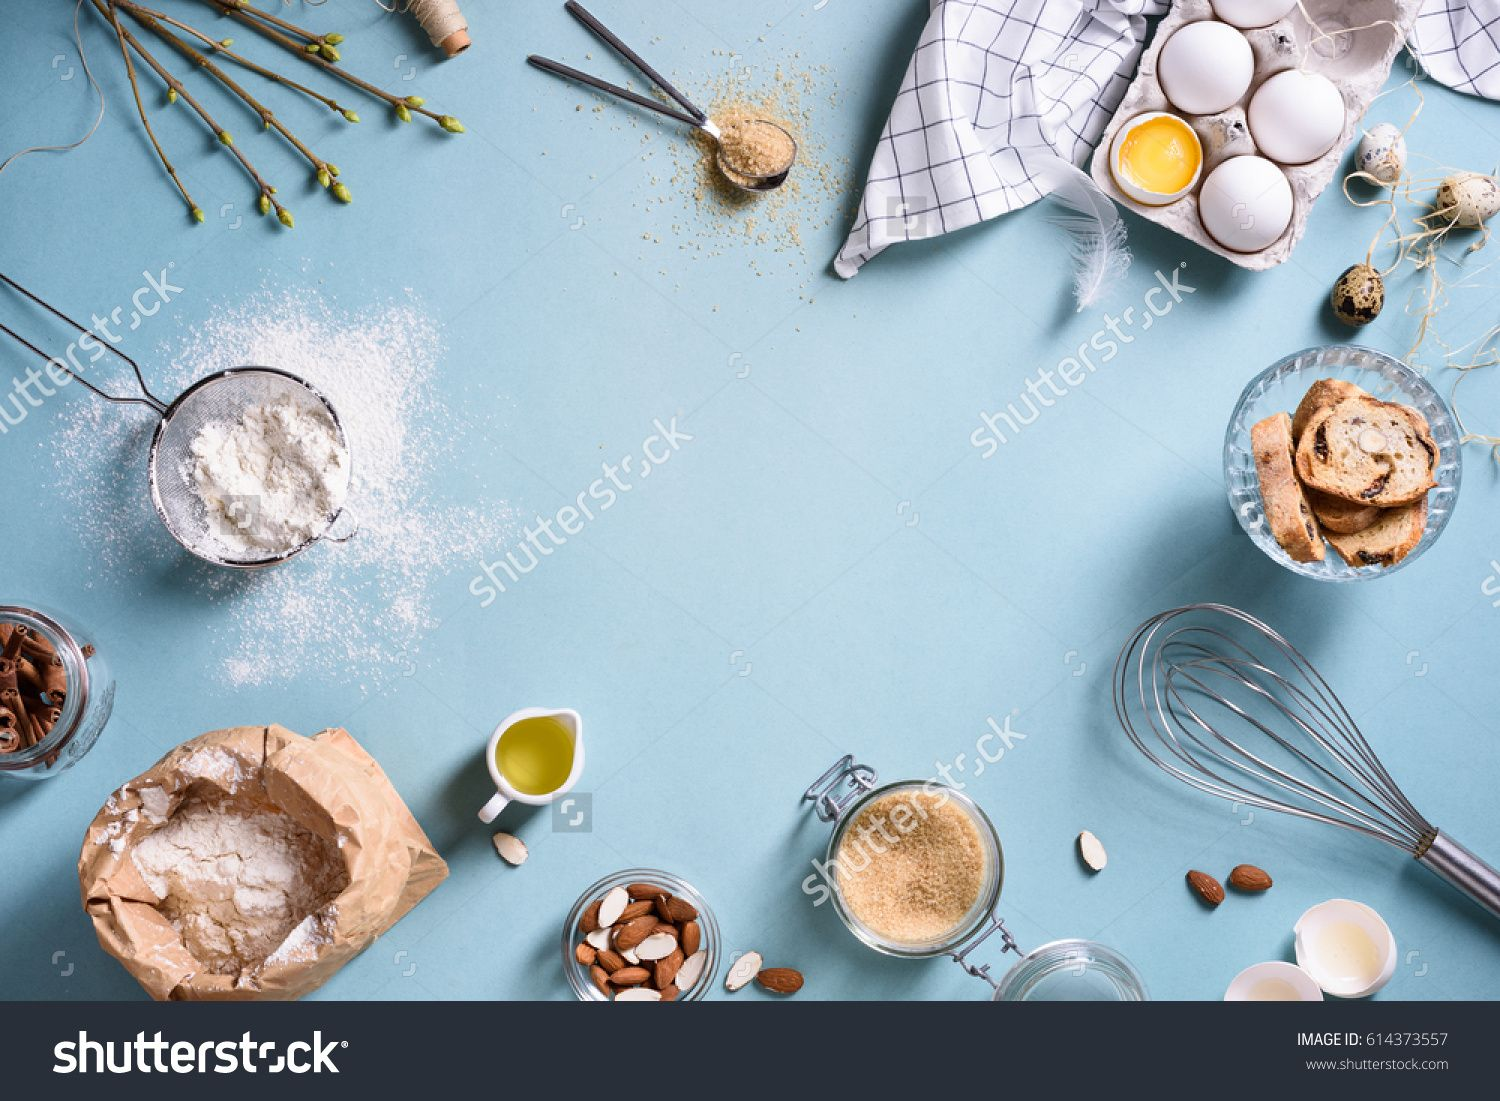 Baking or cooking background frame. Ingredients, kitchen items for ...